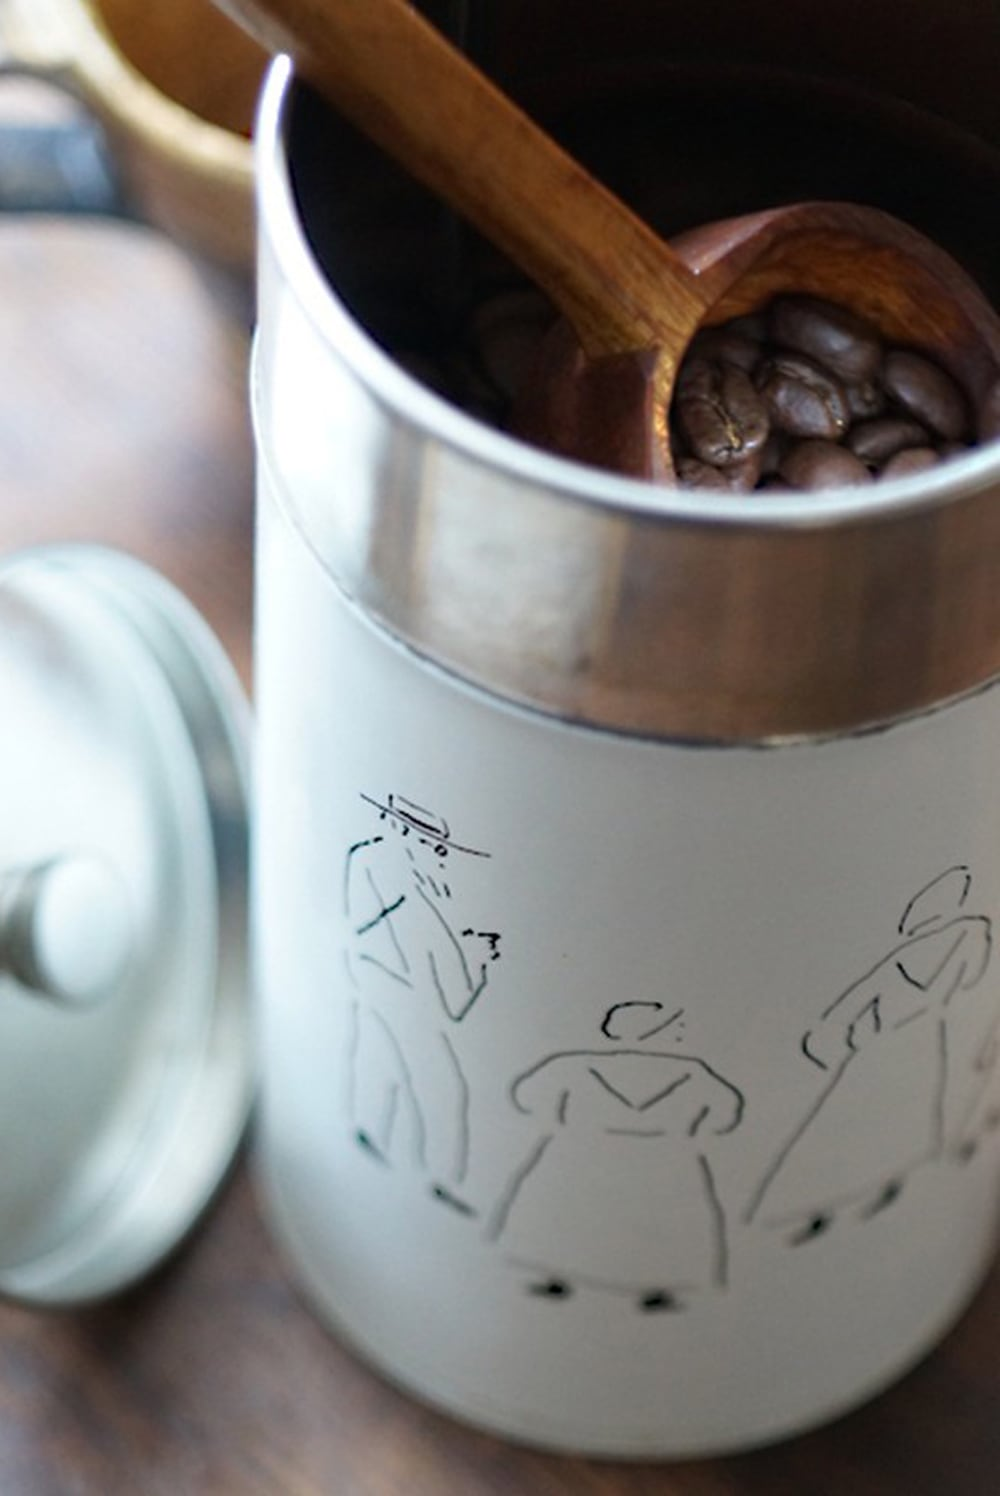 Coffee Canister(Hitomi Taba)